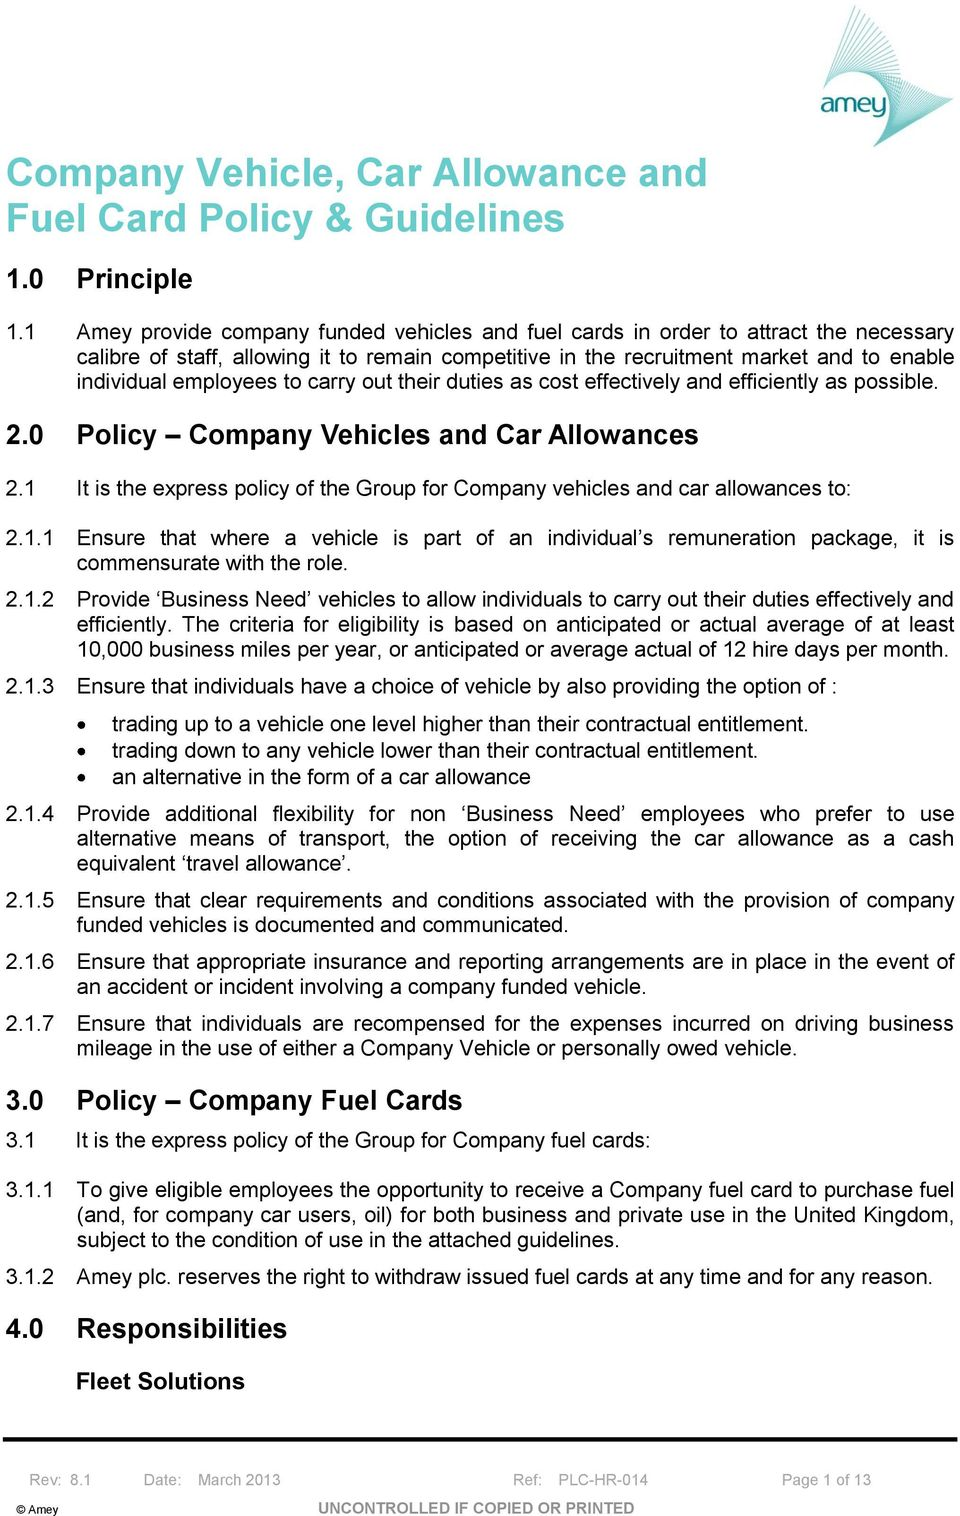 Company Vehicle, Car Allowance and Fuel Card Policy & Guidelines - PDF